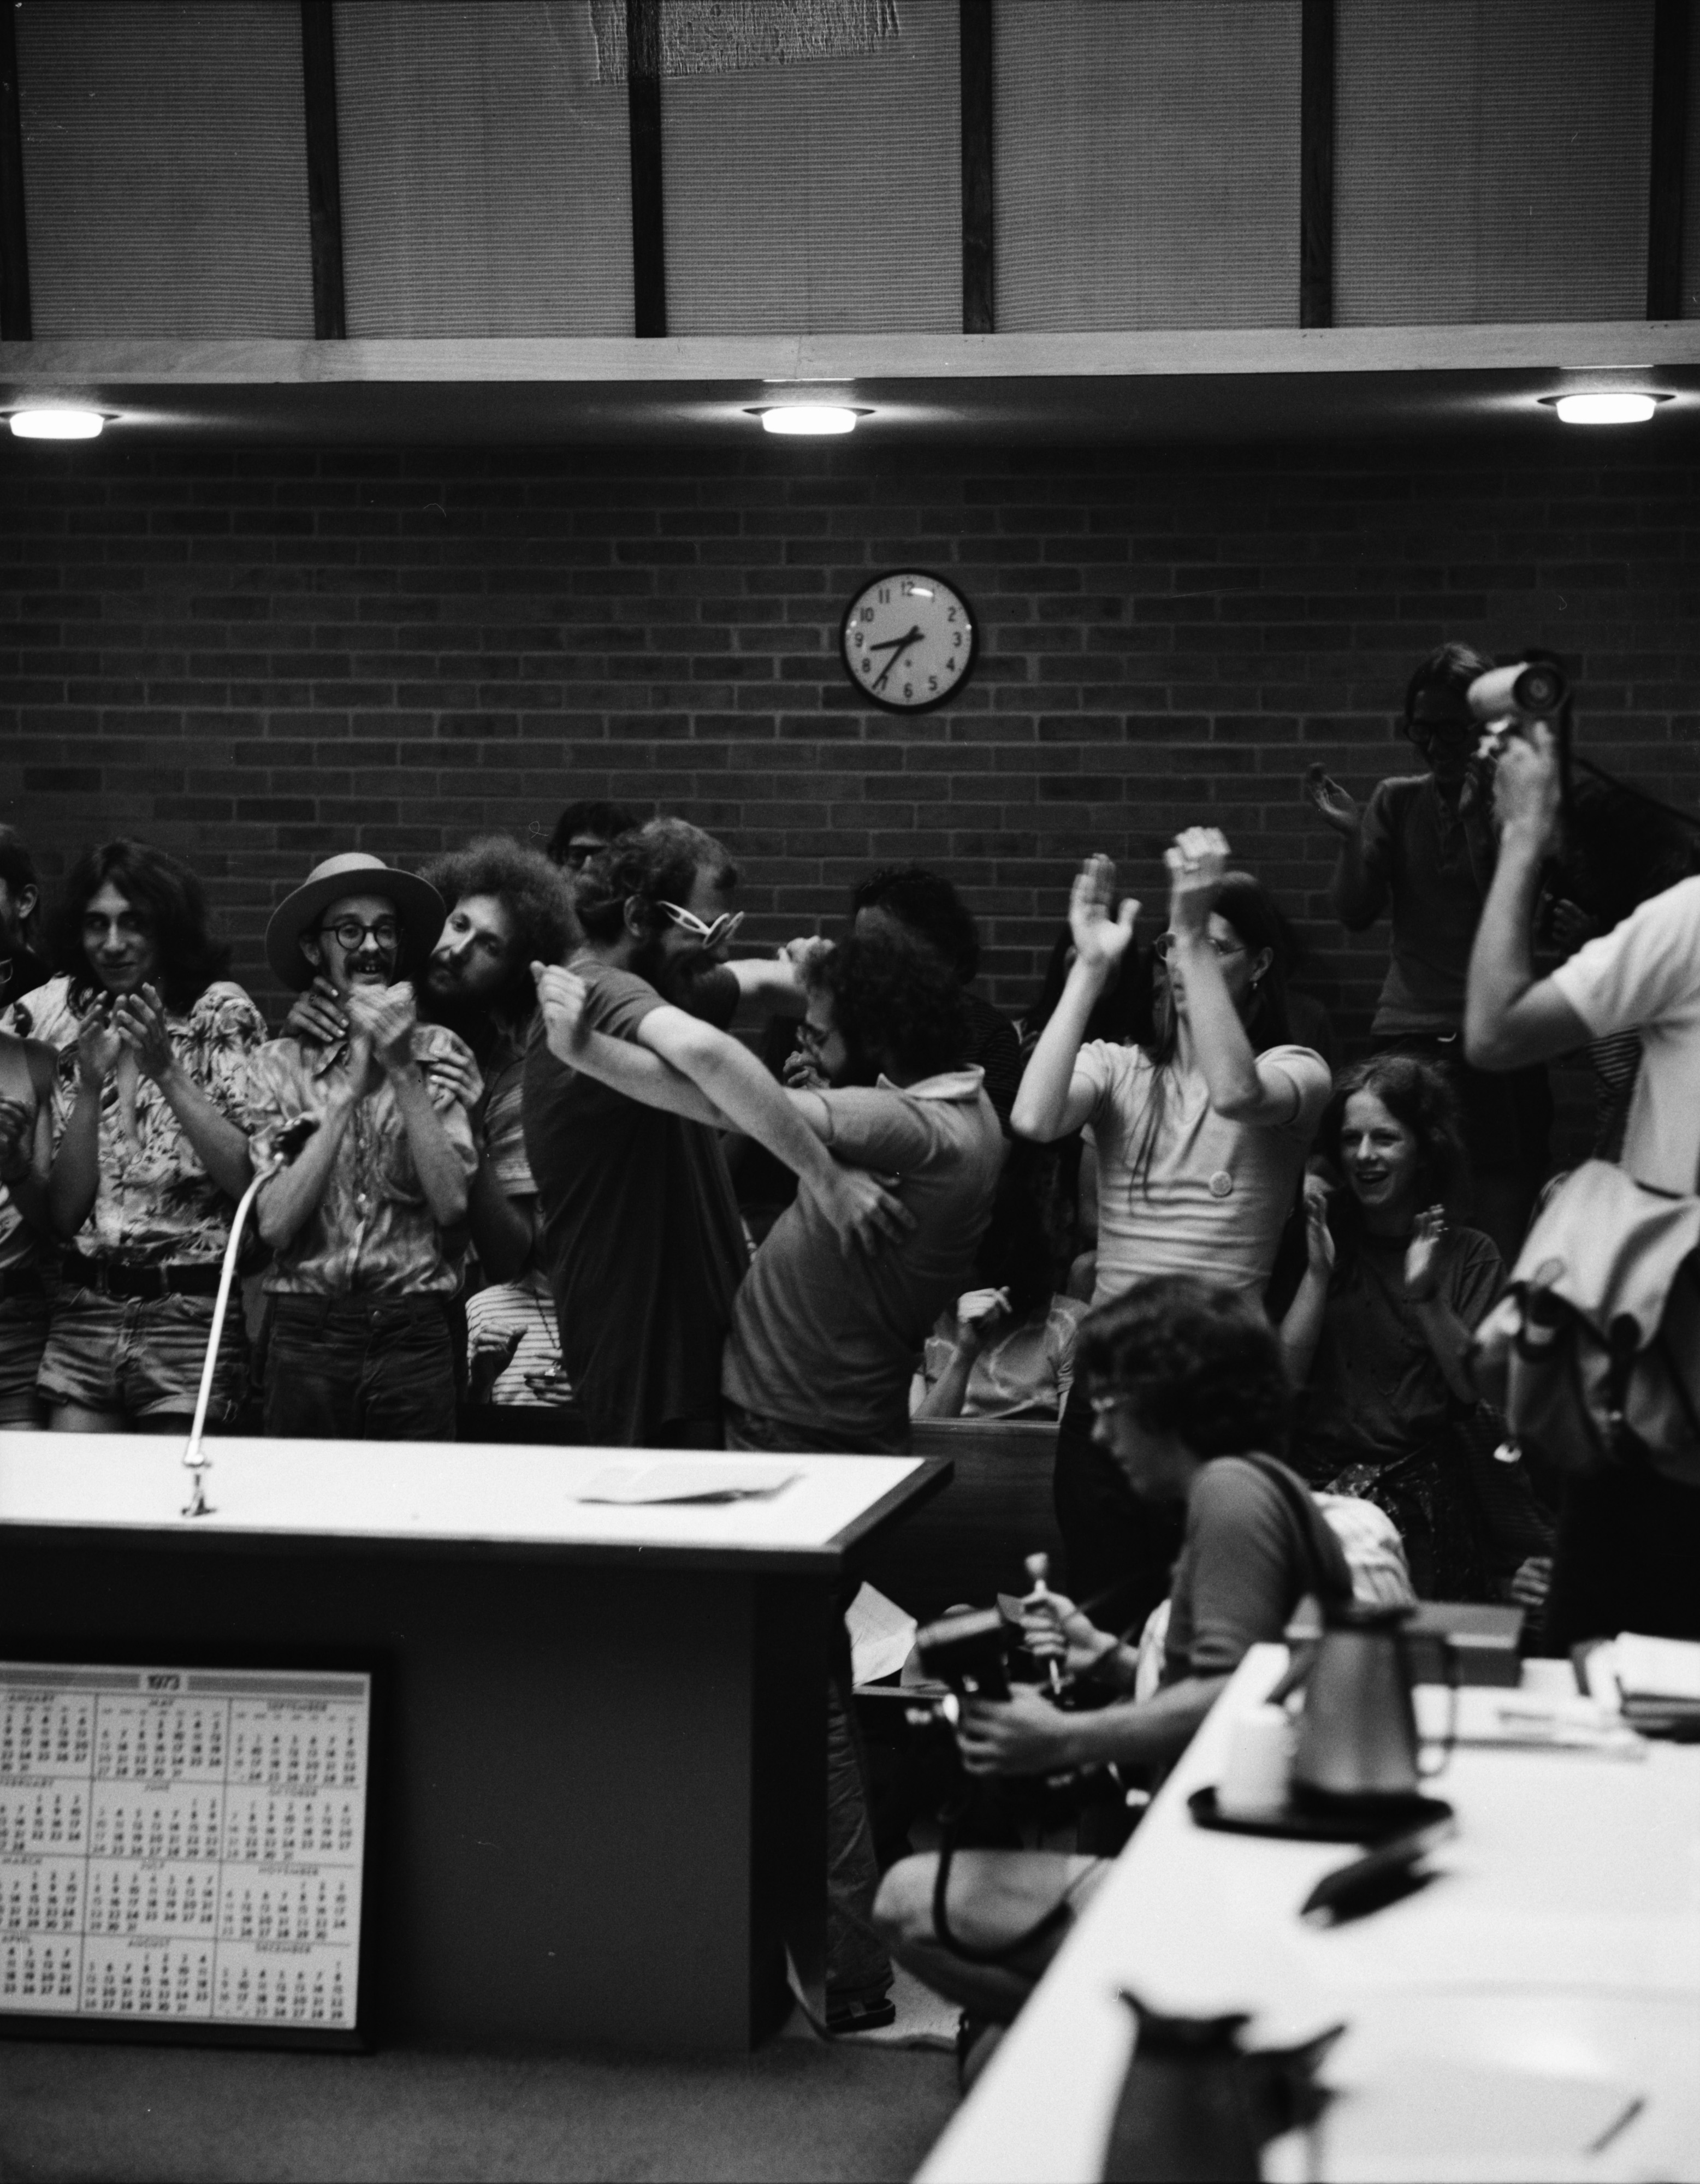 Audience Members During Ann Arbor City Council Hearing On Repealing Pot Ordinance, July 10, 1973 image